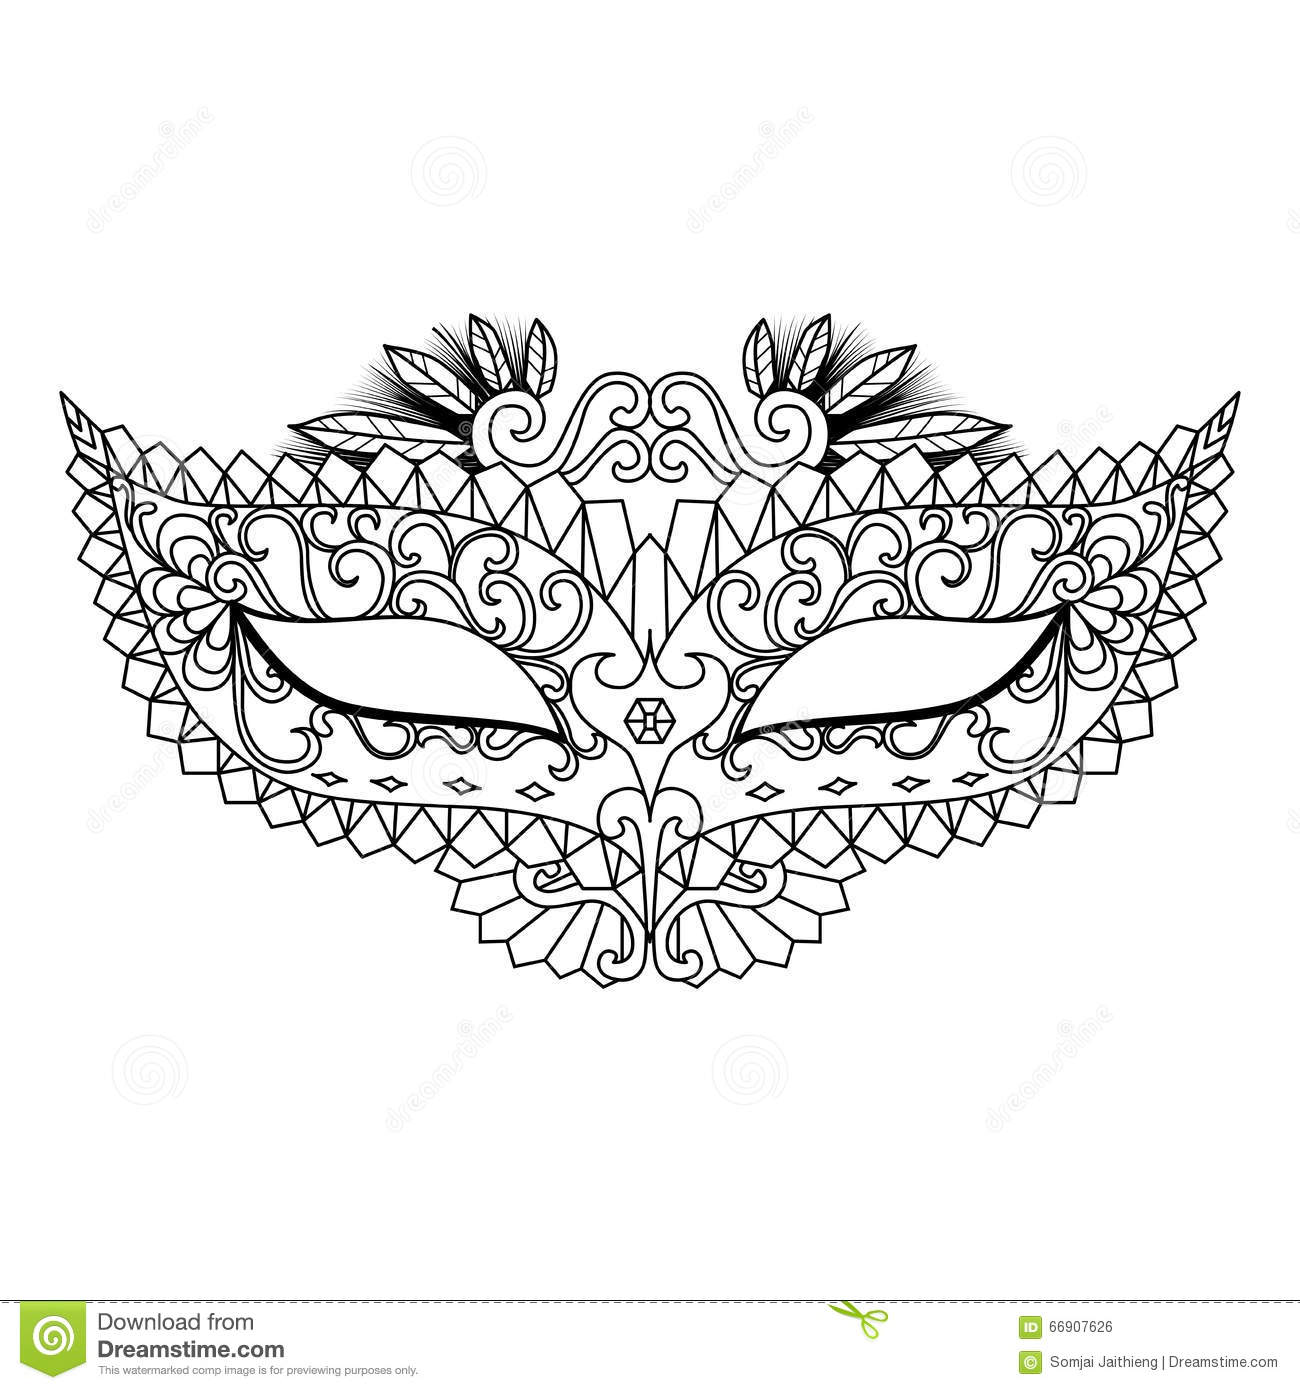 free coloring pages mardi gras : Mardi Gras Carnival Mask For Coloring Book And Other Decorations Royalty Free Stock Image